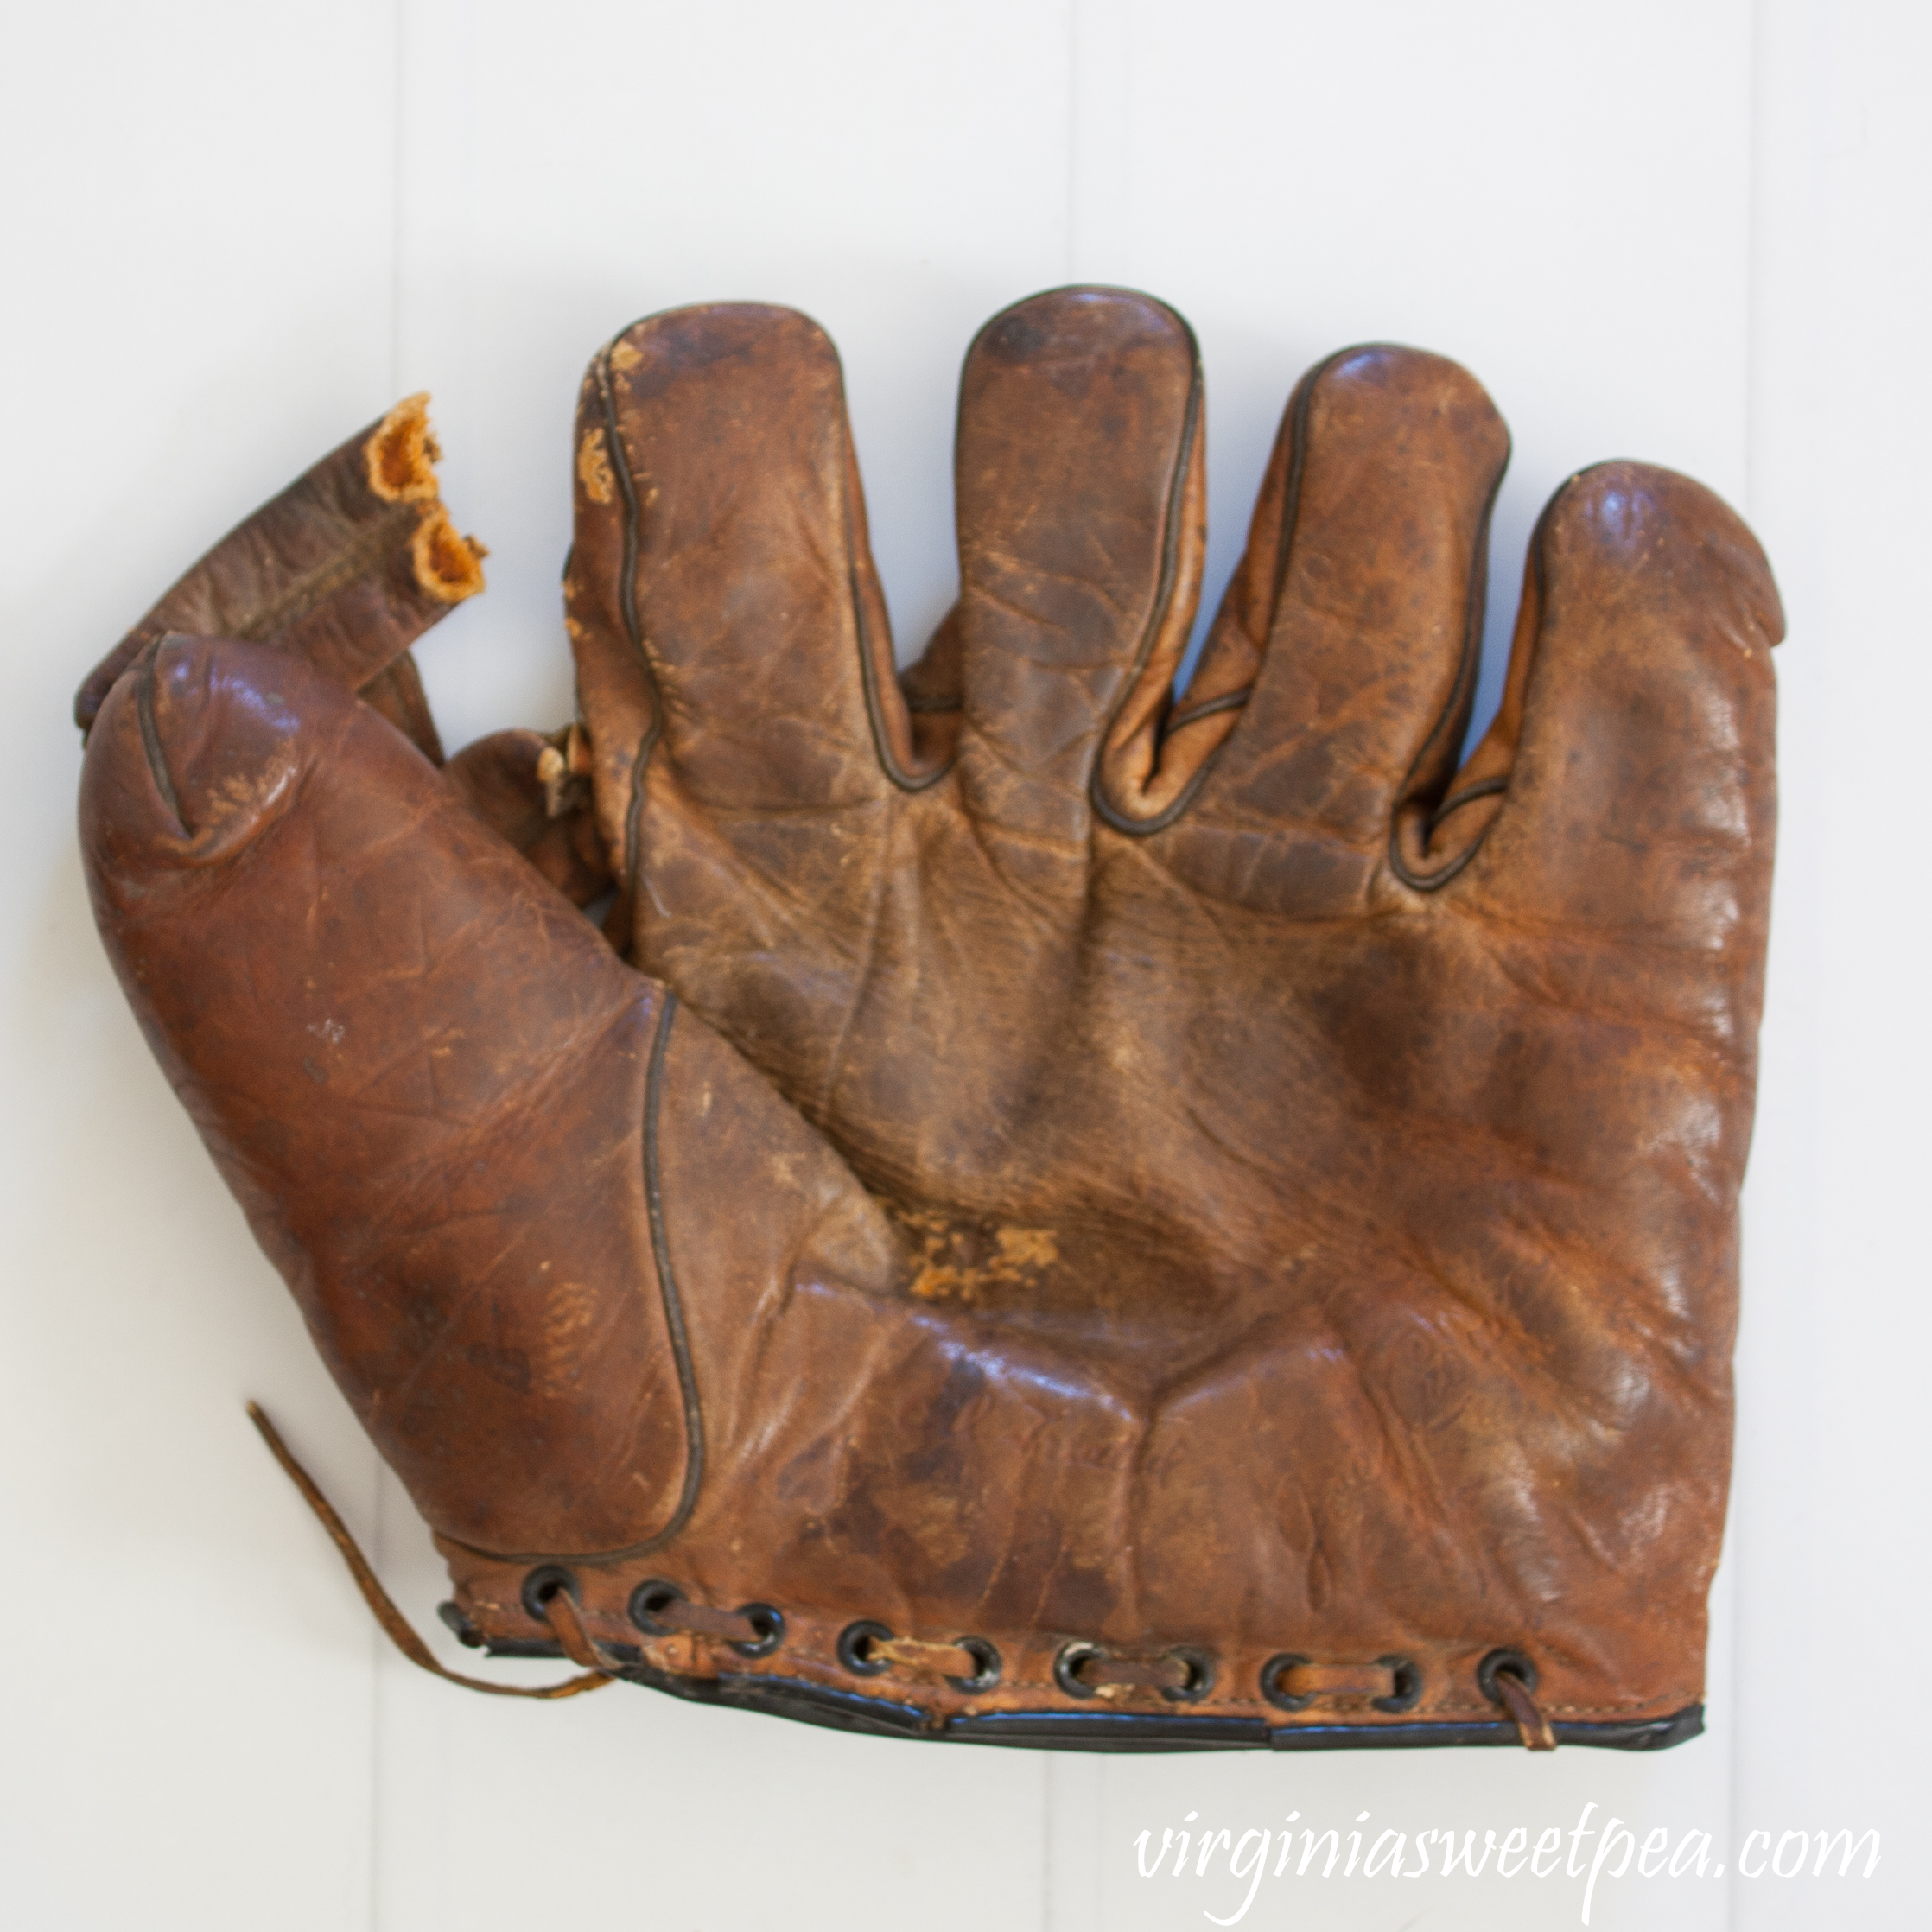 D&M Joe Cronin Baseball Glove